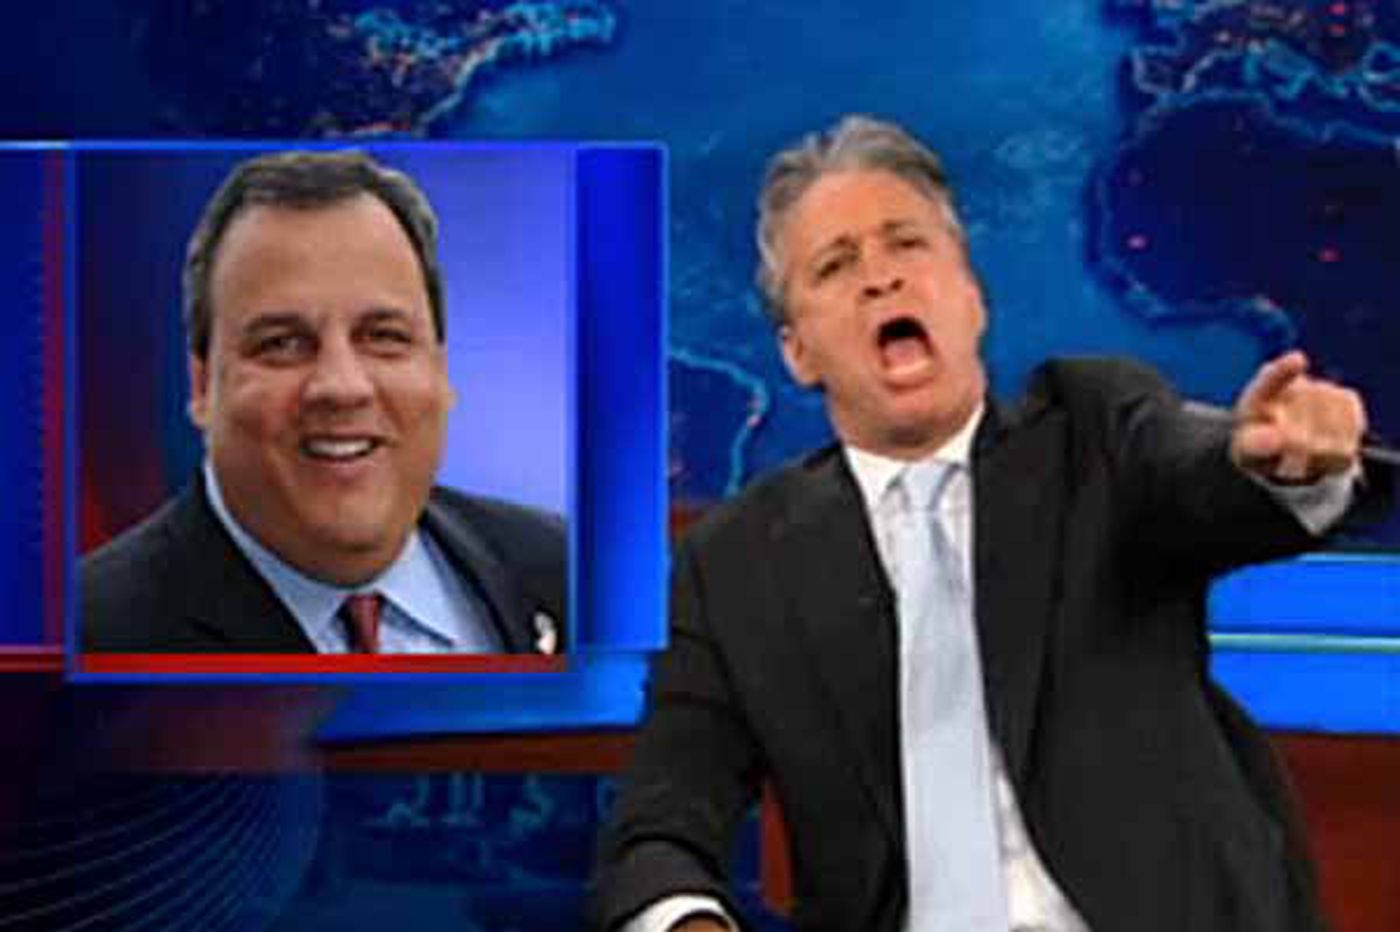 Christie and Jon Stewart on Comedy Central have an easy, rapid-fire repartee